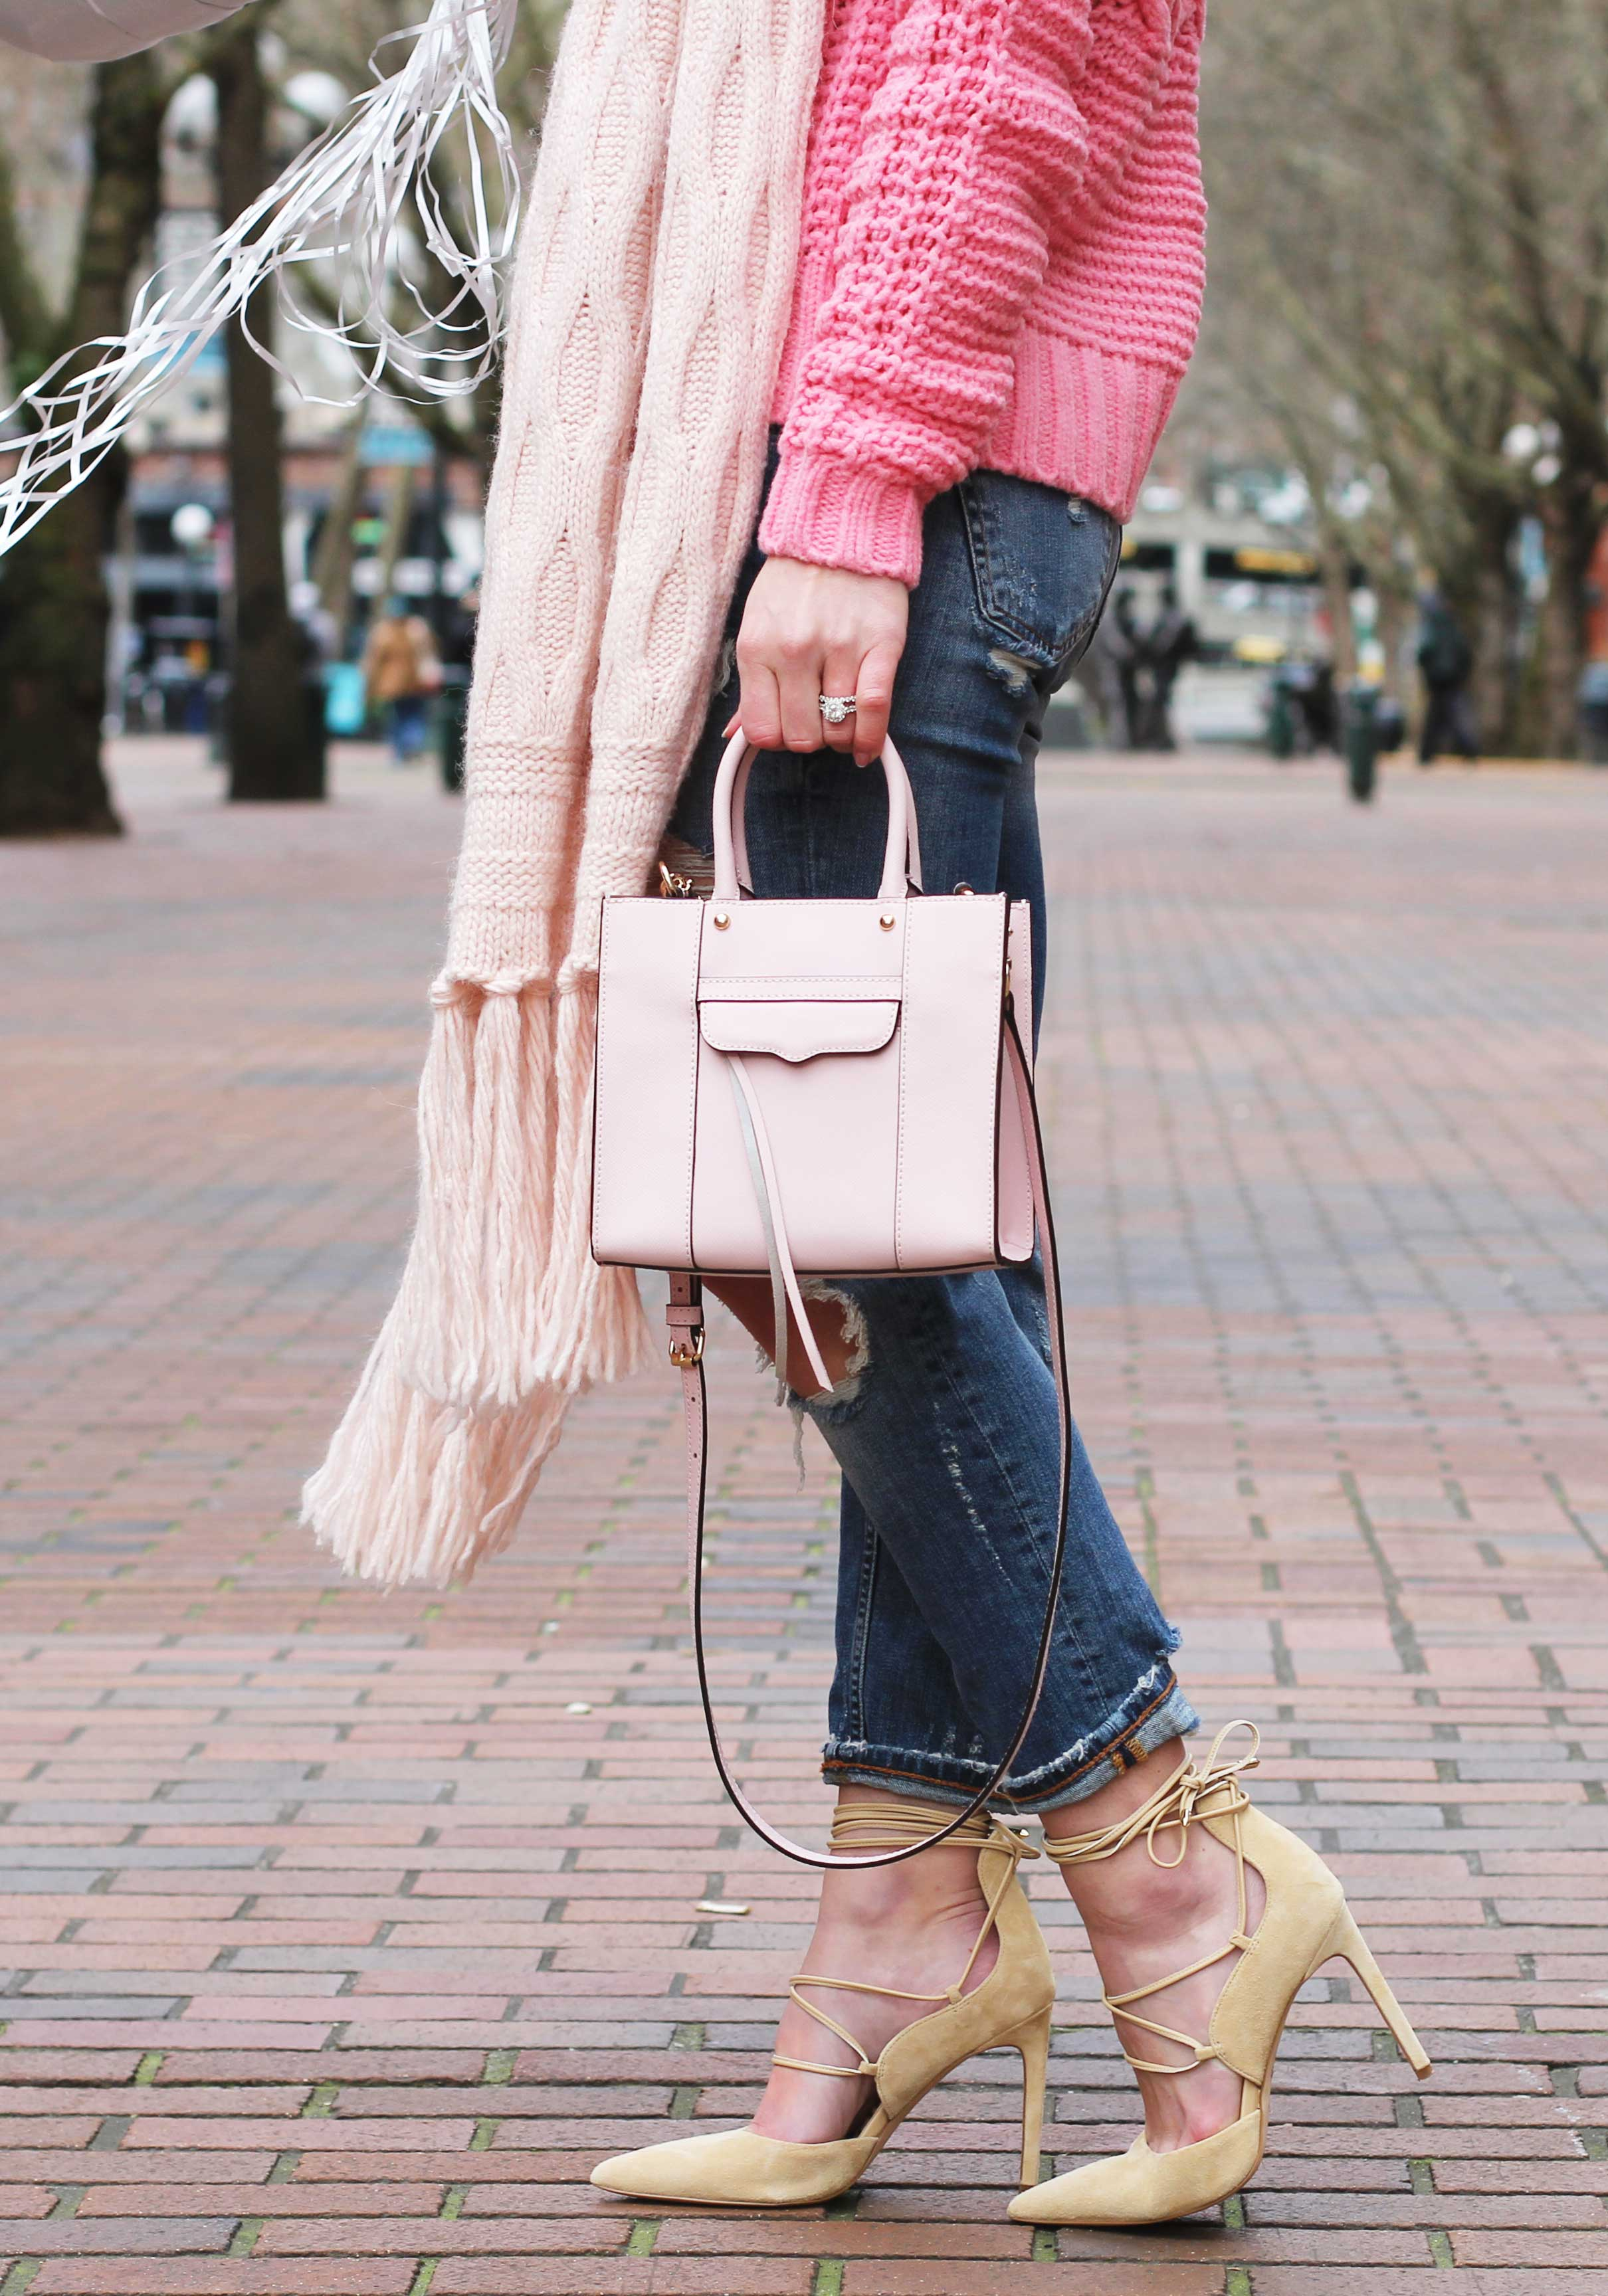 """Casual Valentine's Day Outfit, Banana Republic Cable-Knit Sweater & Scarf, Destroyed Girlfriend Jeans, Sam Edelman """"Dayna"""" Lace-Up Pumps, Rebecca Minkoff 'Mab Mini' Bag, Conversation Heart Balloons"""